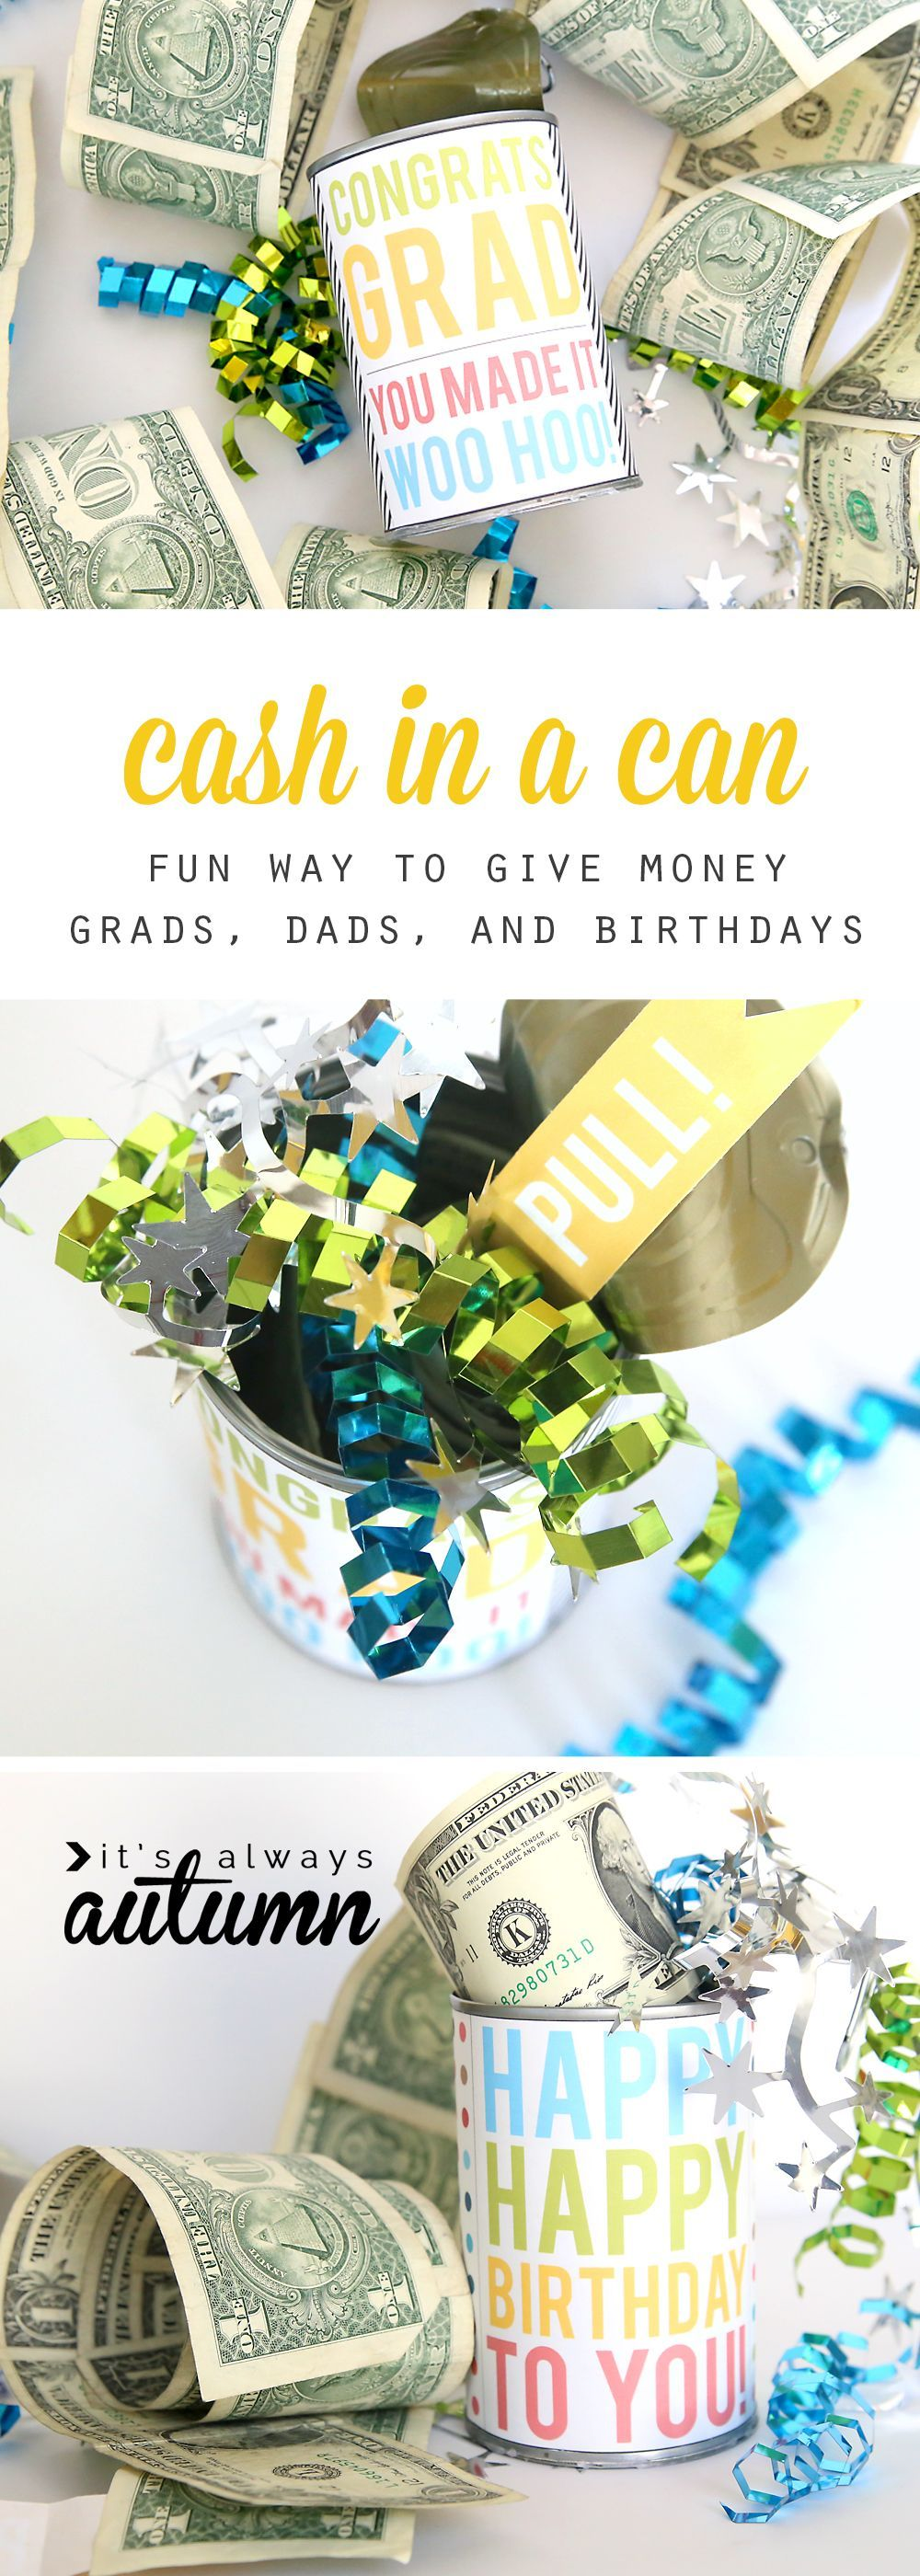 Cash in a can fun way to give money as a gift for